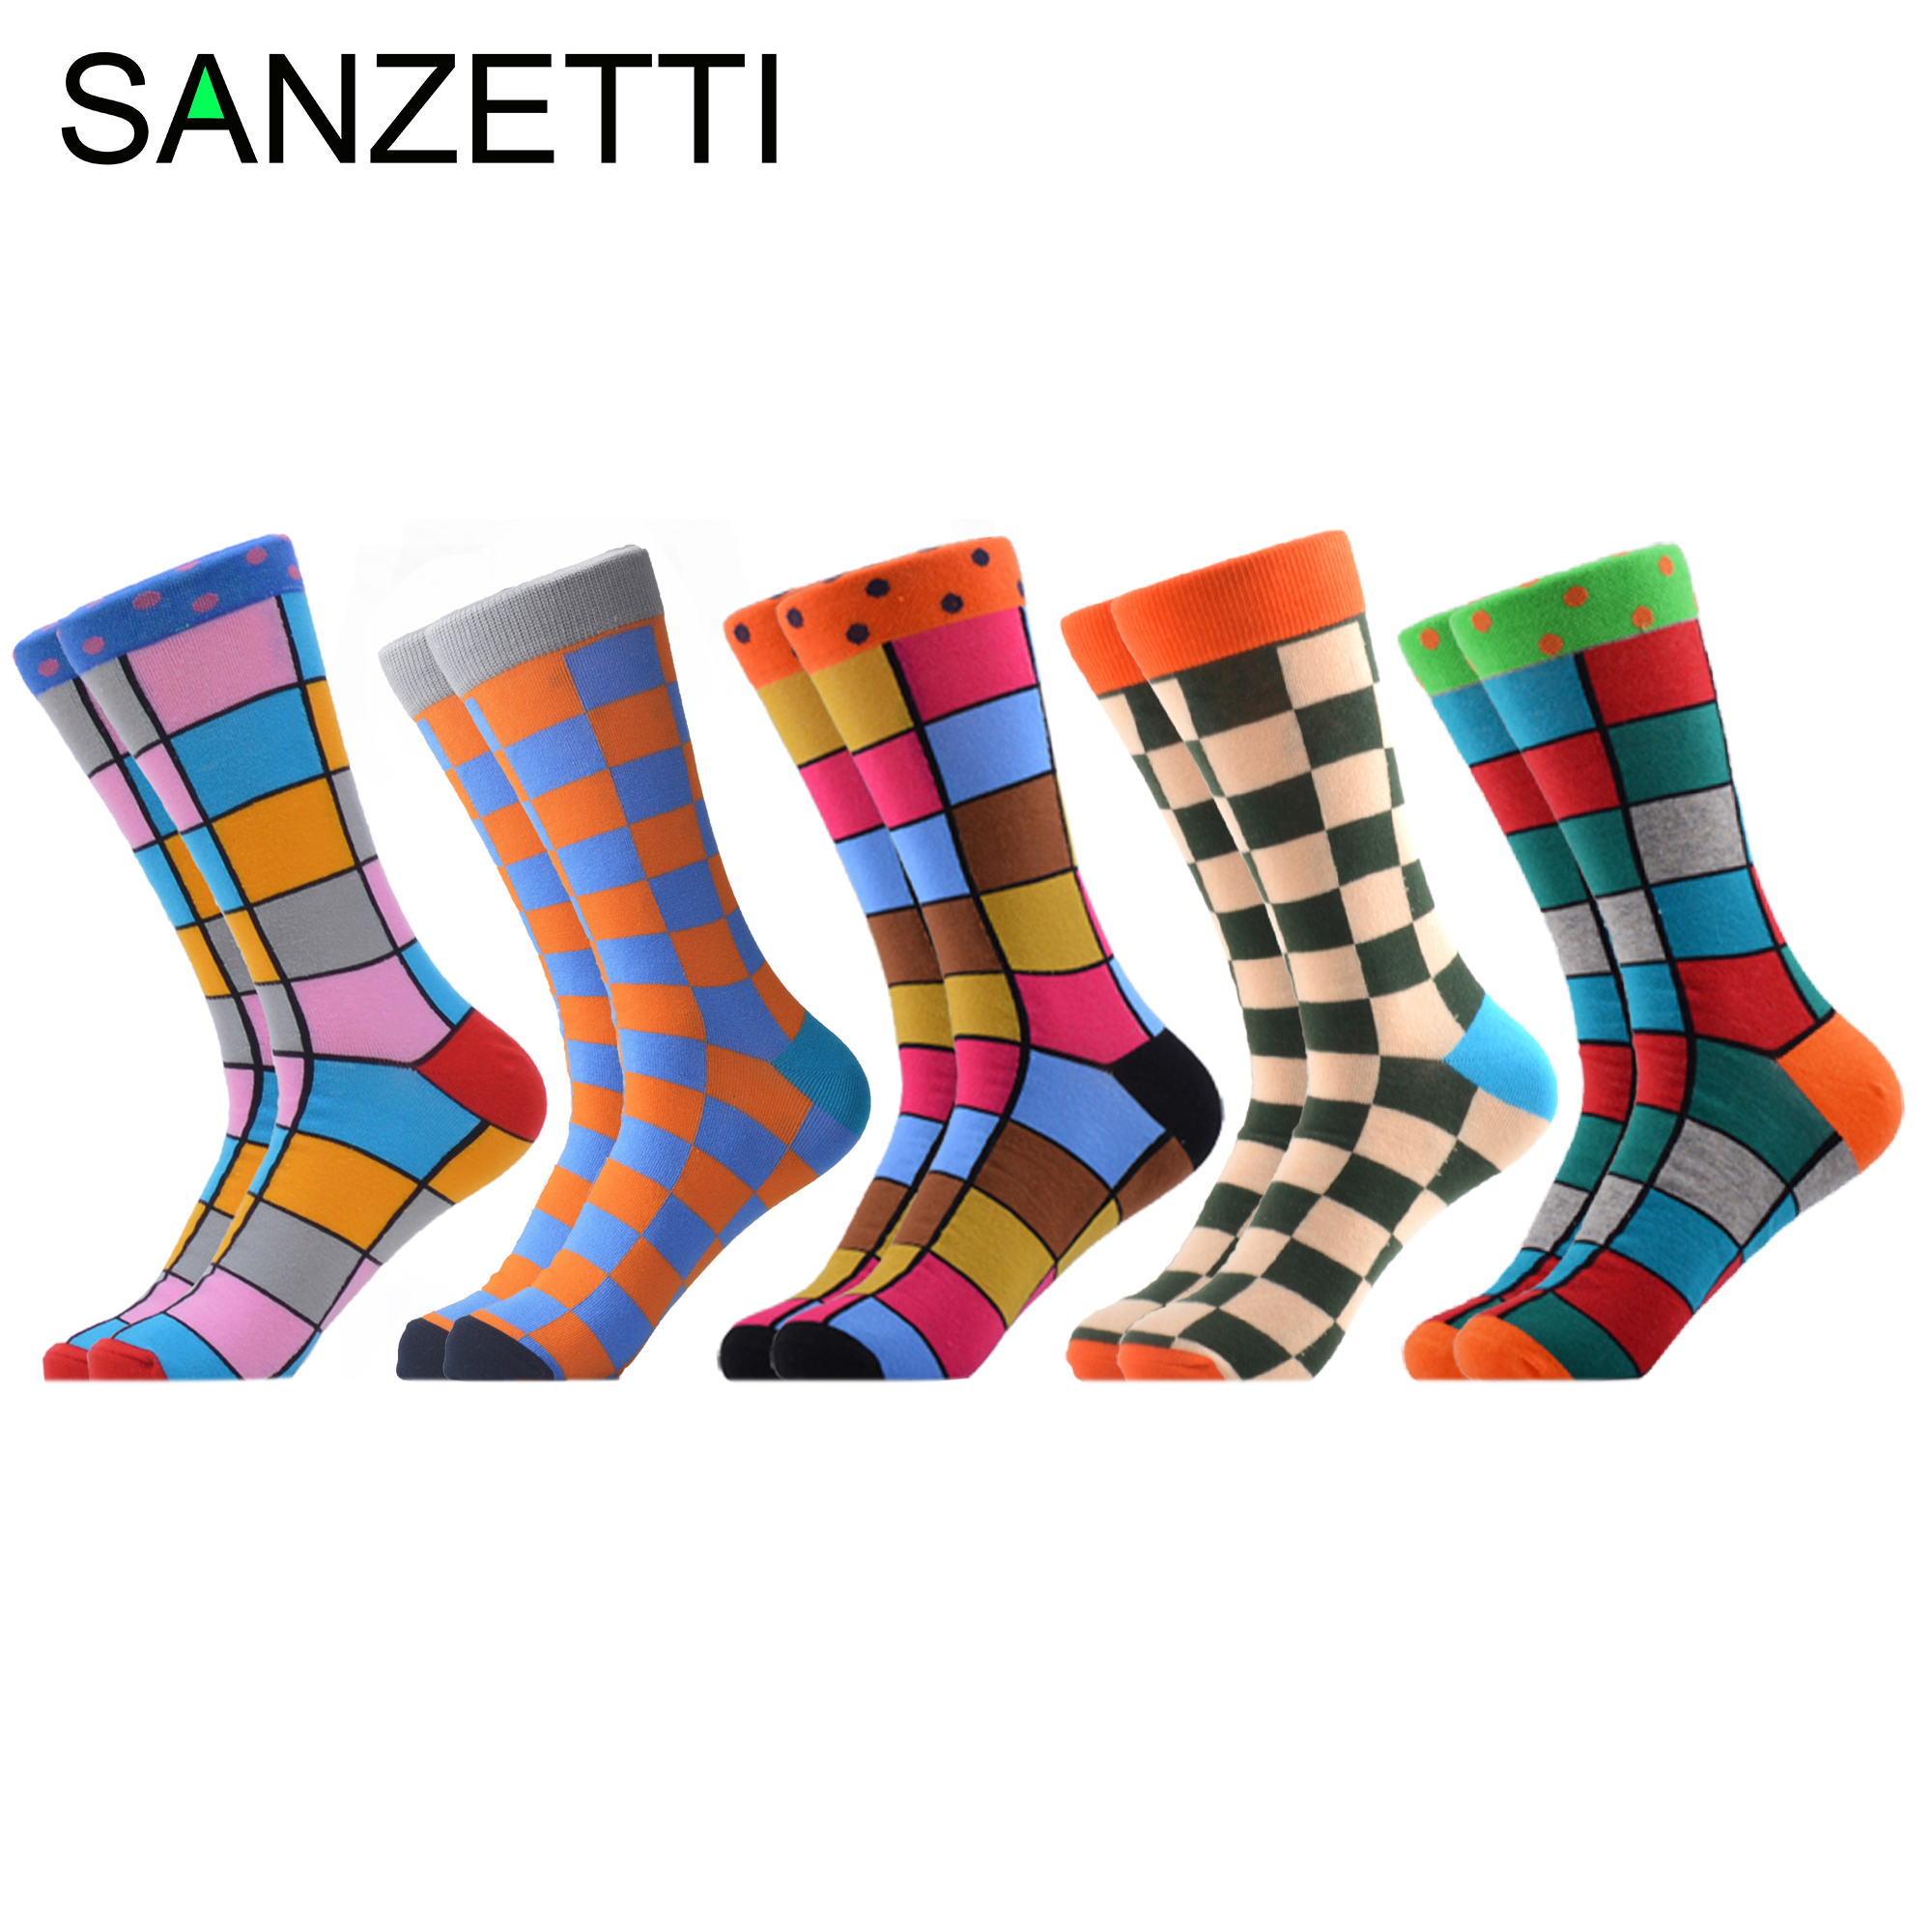 SANZETTI 5 Pairs/Lot Men's Casual Combed Cotton Happy Crew Socks Personality Funny Fashion Party Gifts Creative Dress Socks